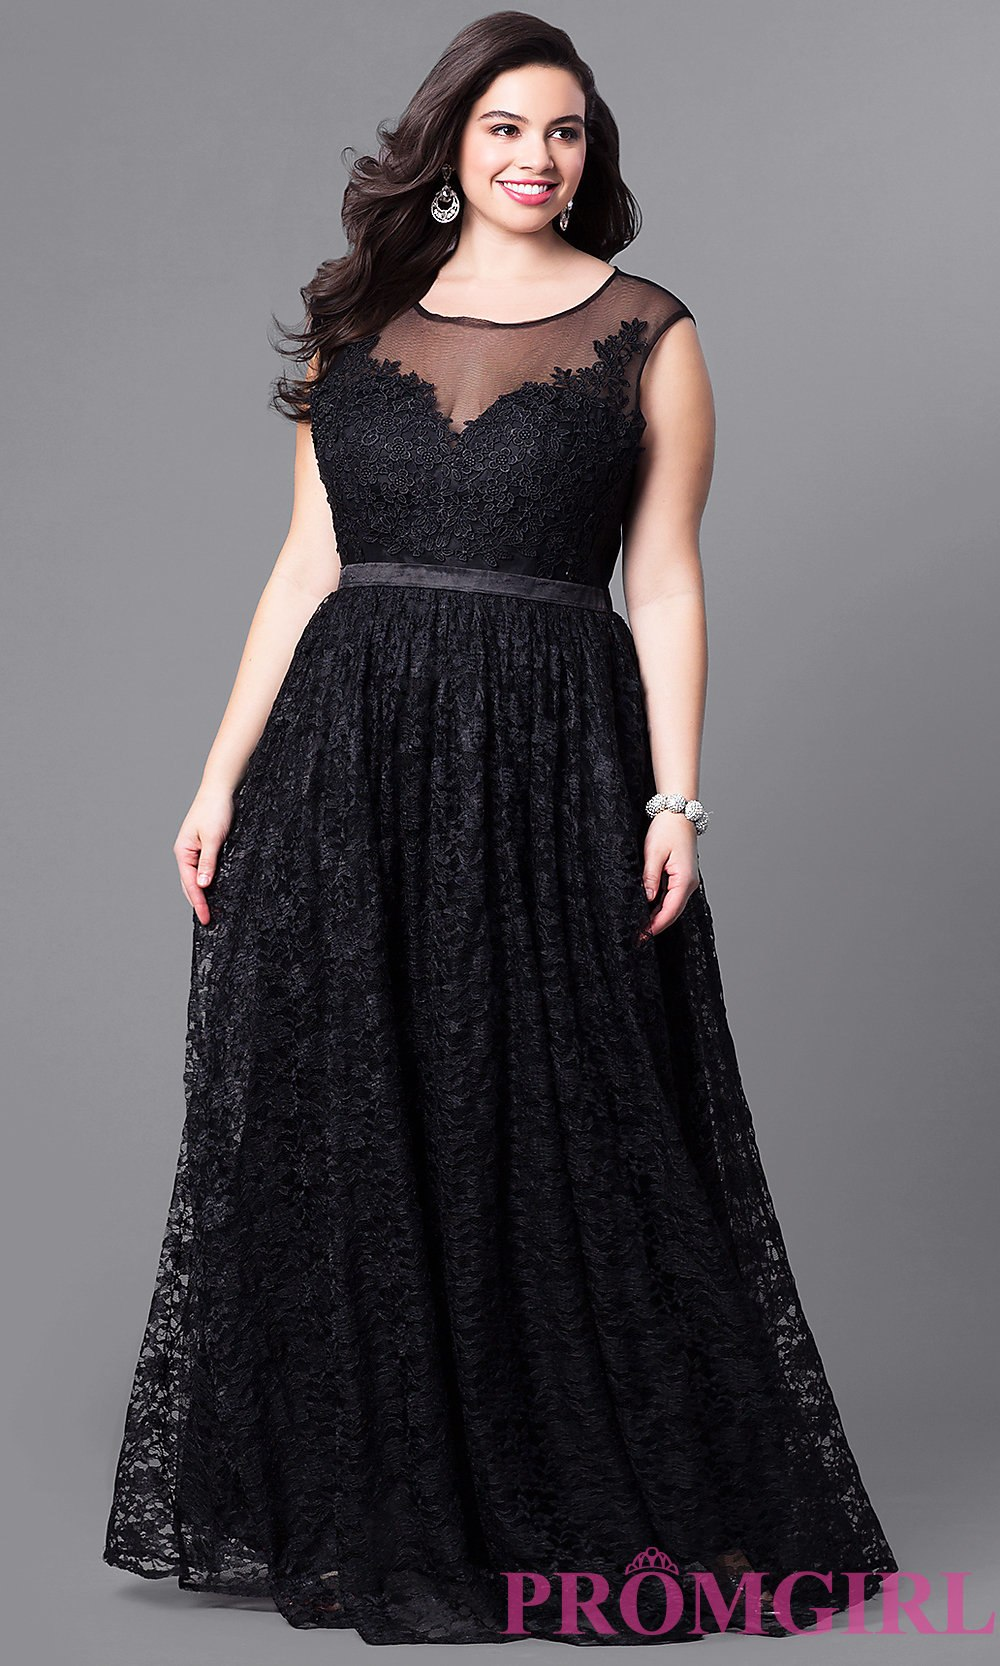 plus size formal dresses hover to zoom fjmylpu